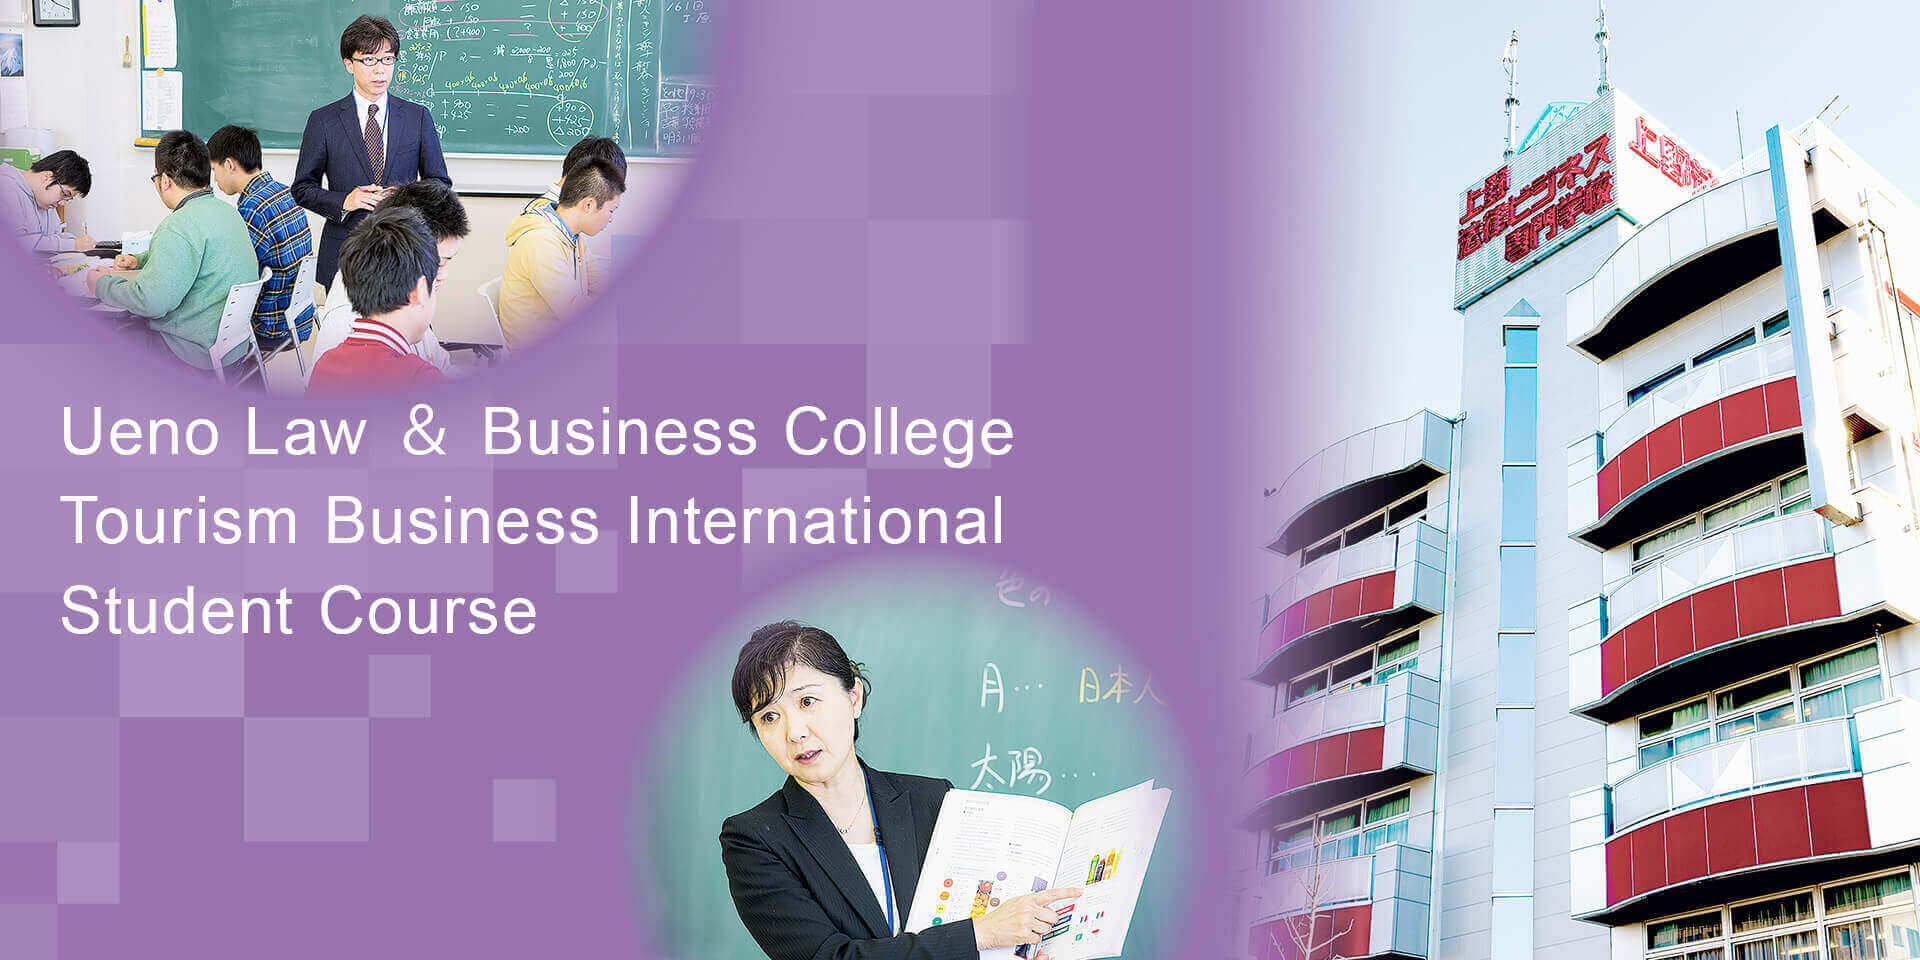 Ueno Law & Business College Tourism Business International Student Course